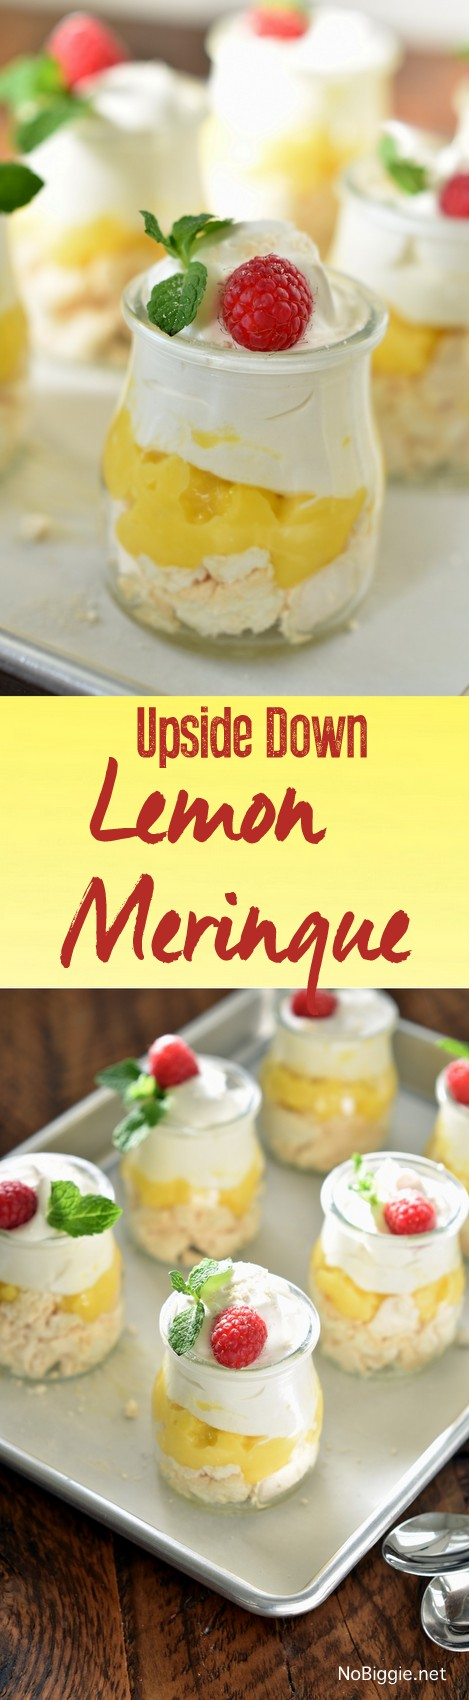 Upside Down Lemon Meringue Cups | NoBiggie.net